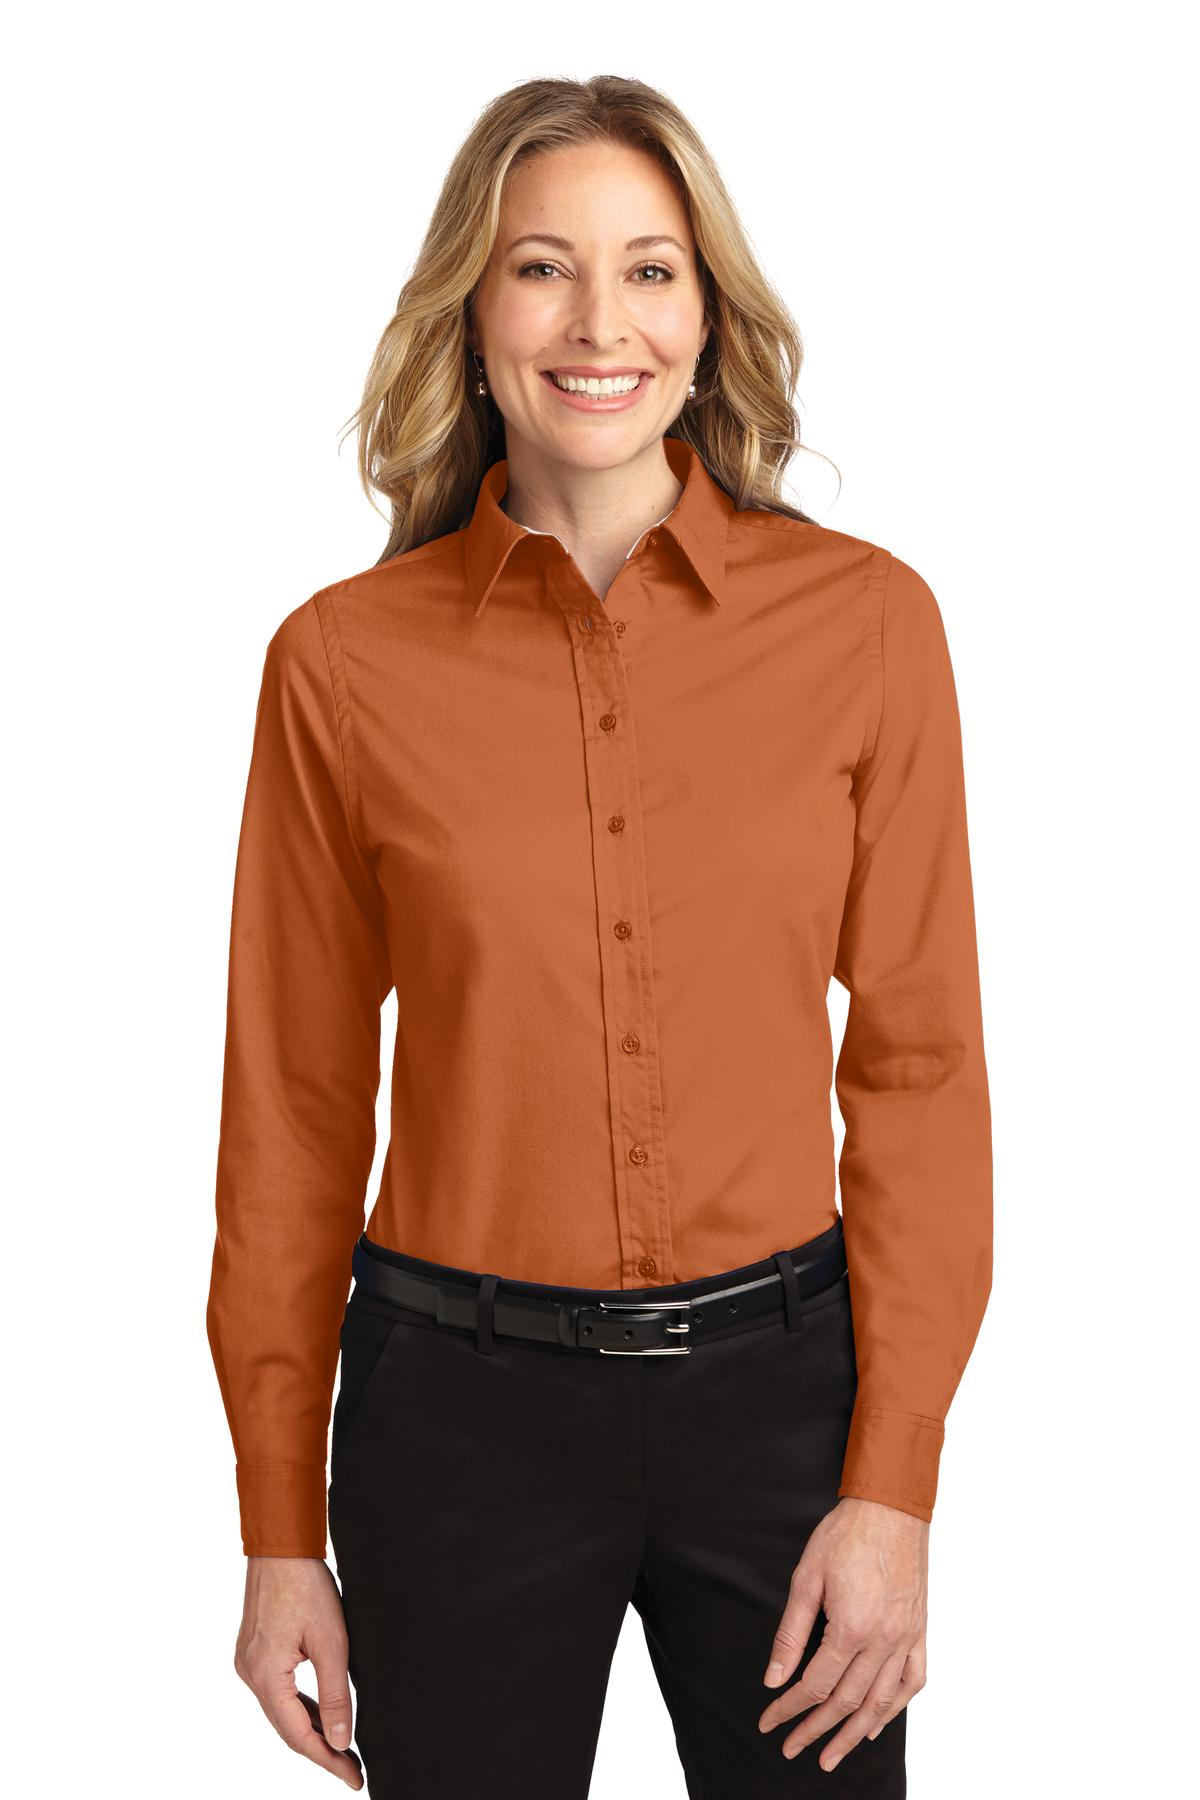 Port Authority ®  Ladies Long Sleeve Easy Care Shirt.  L608 - Texas Orange/ Light Stone